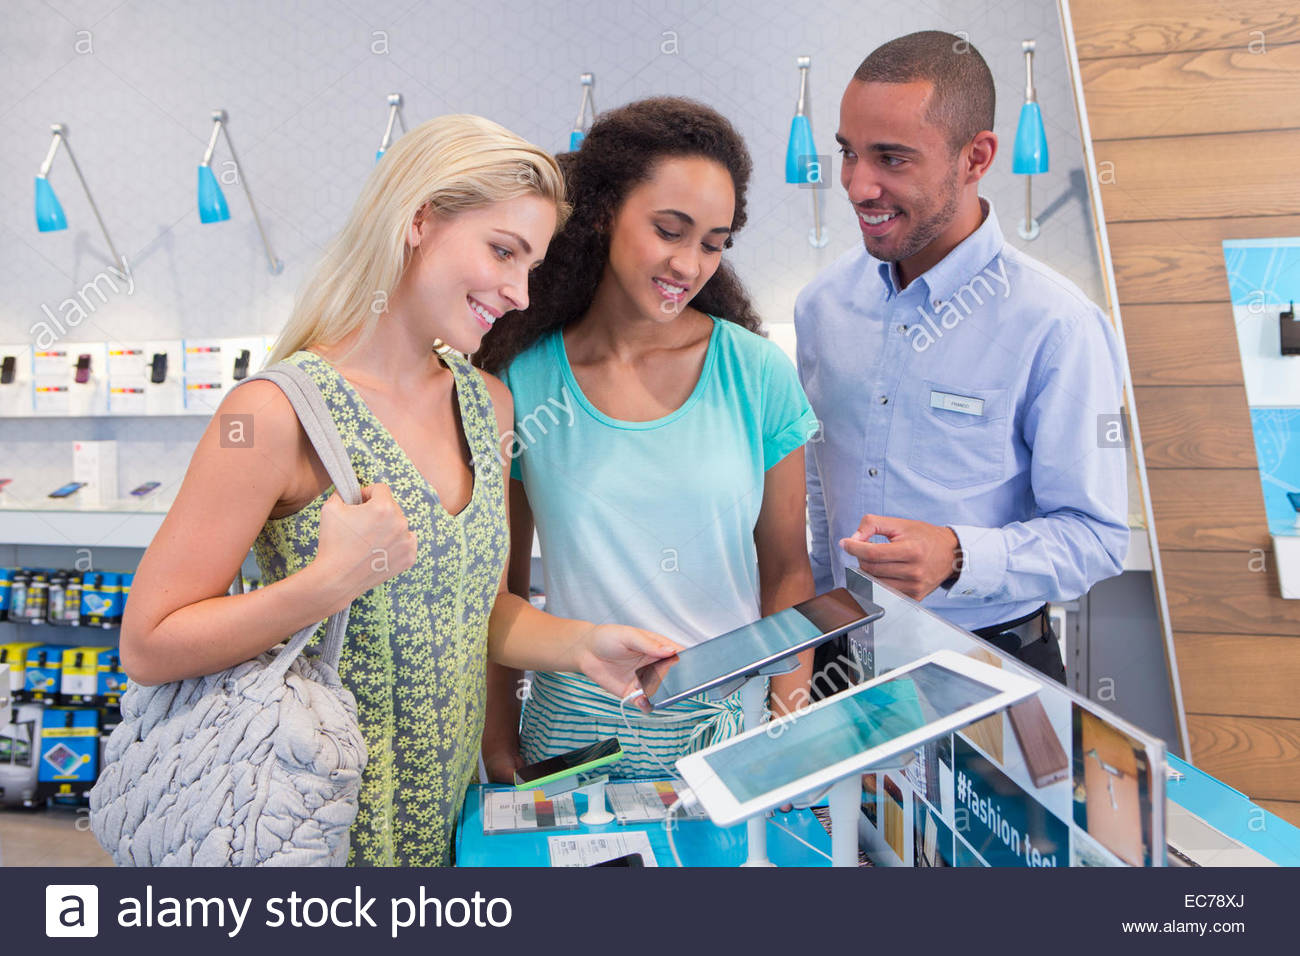 Store manager assisting two female customers in computer store - Stock Image